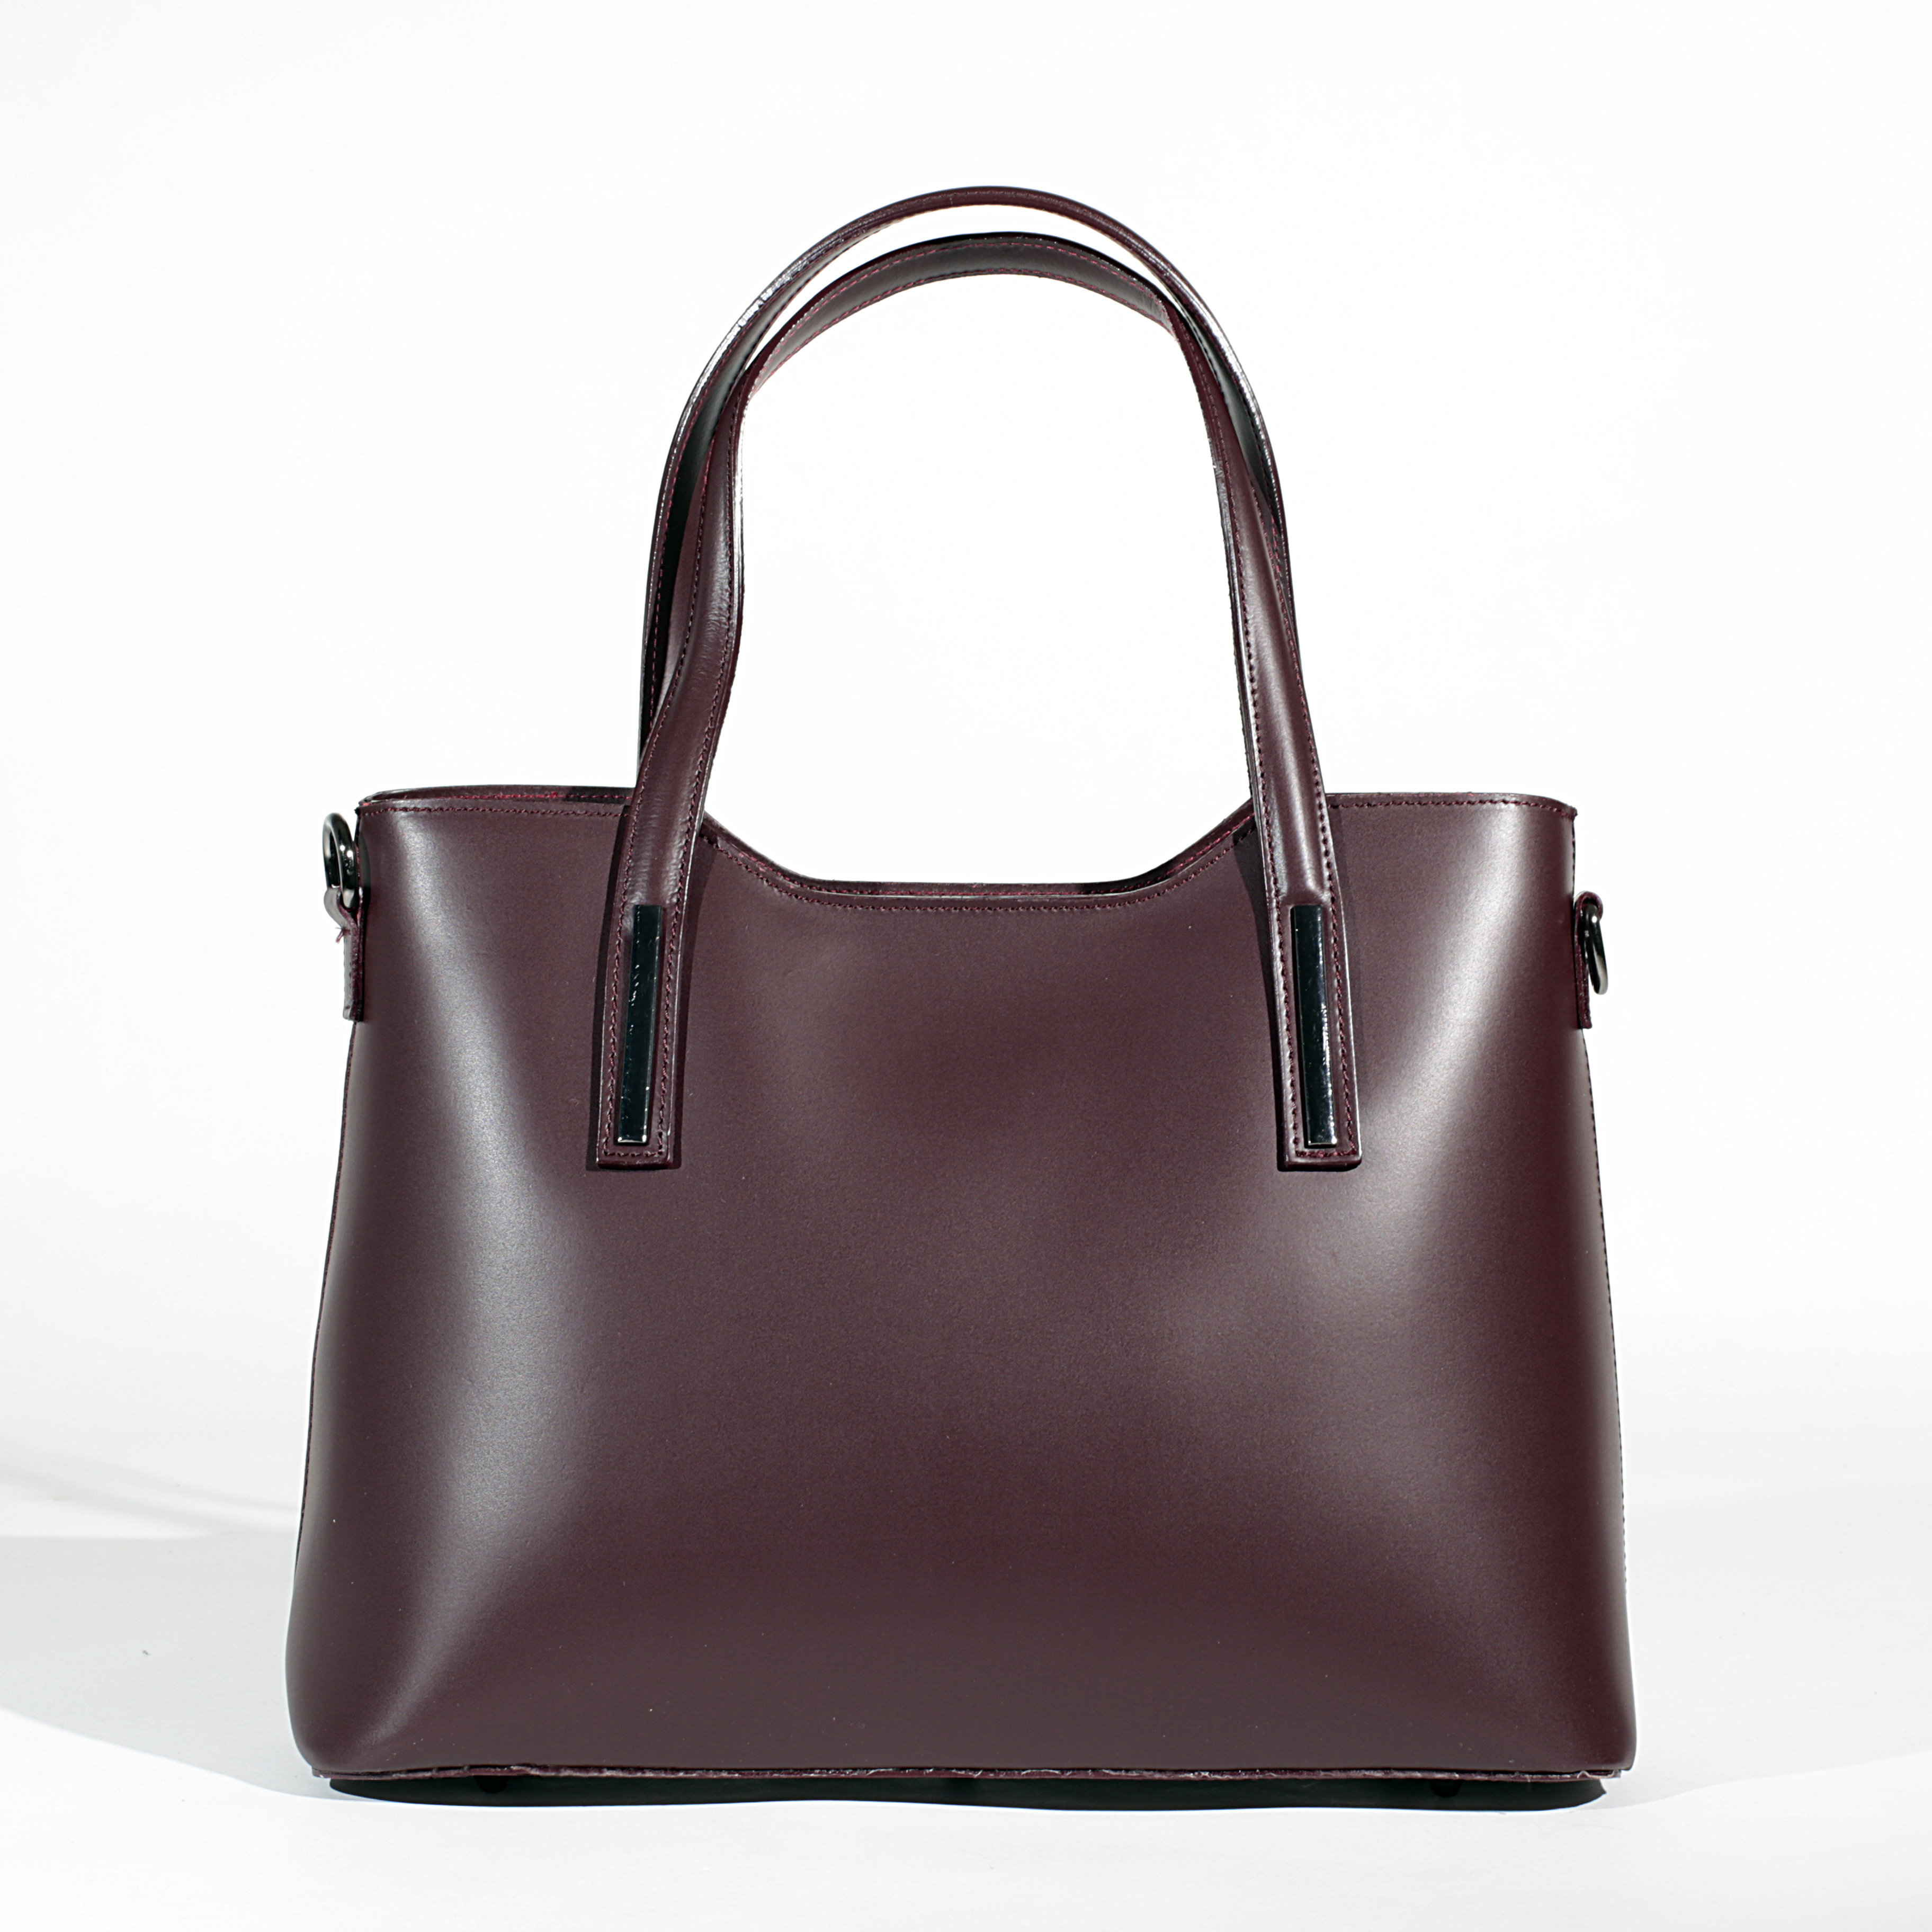 9495288c96 Letaher Tote bag with two handles